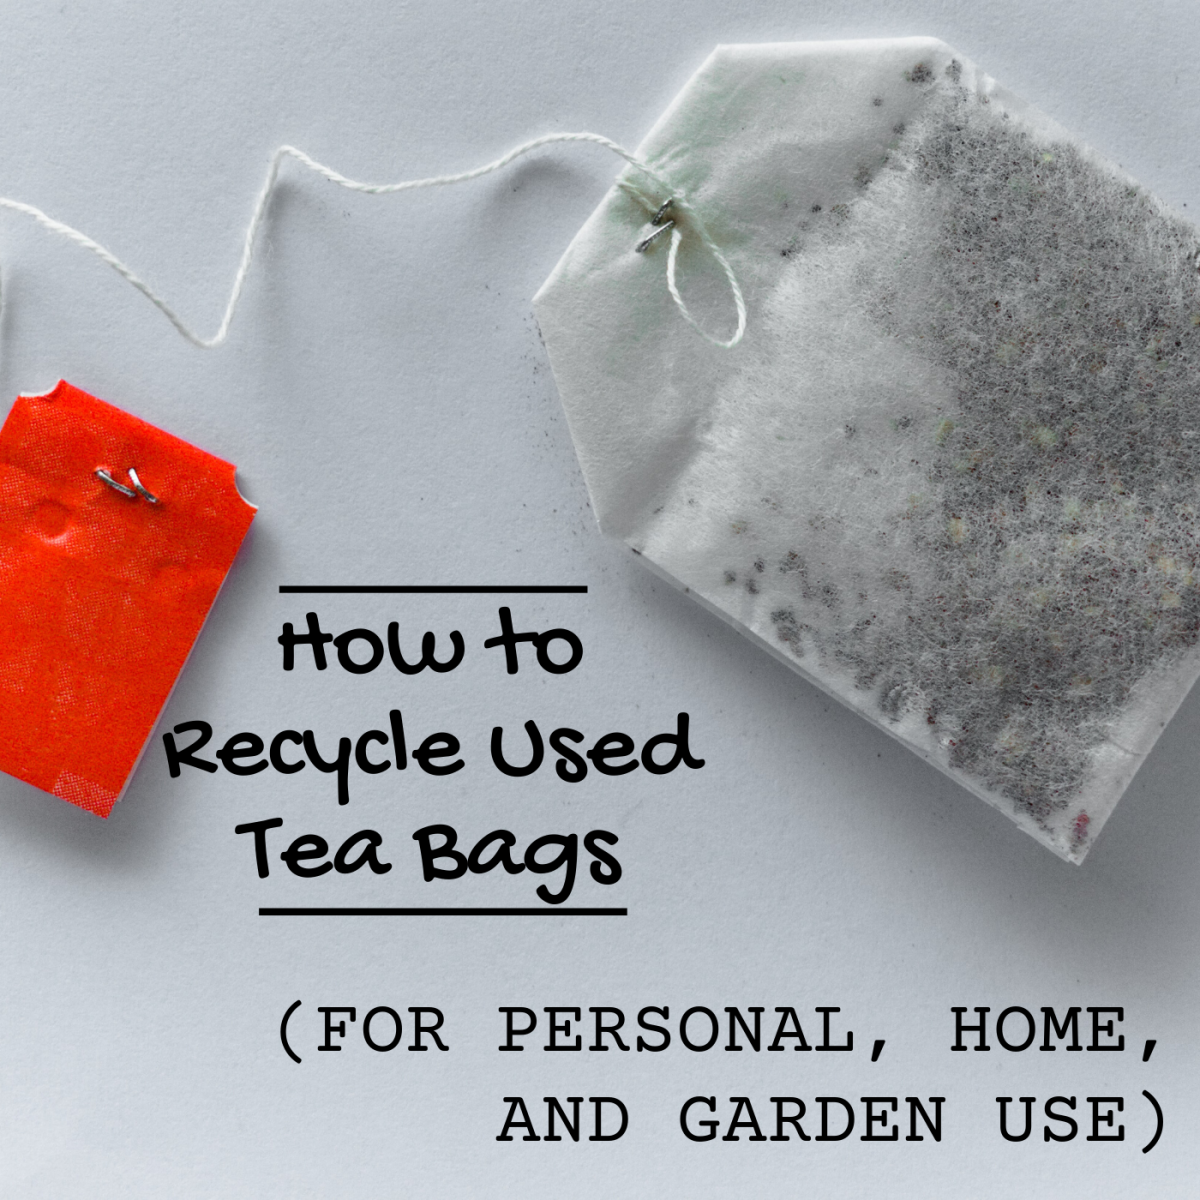 Learn how to reuse all those tea bags instead of tossing them in the trash.